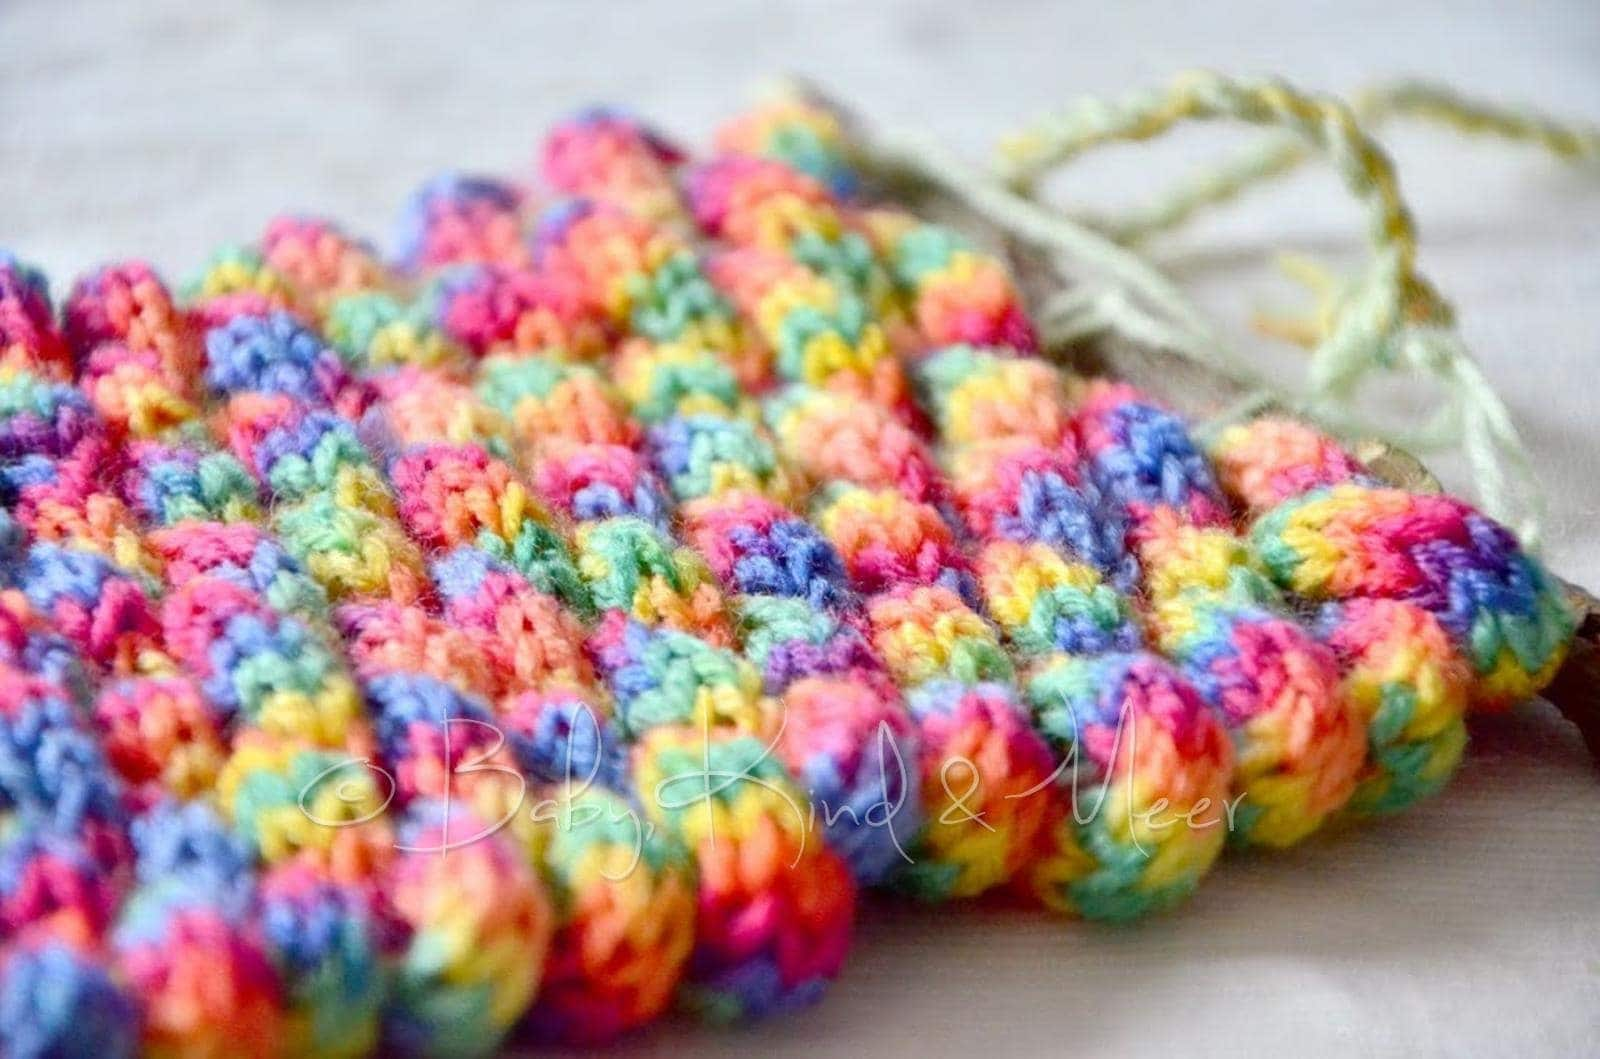 Strickliesel Kurbel Best Strickliesel Ideen Images In Spool Knitting Yarns Necklaces